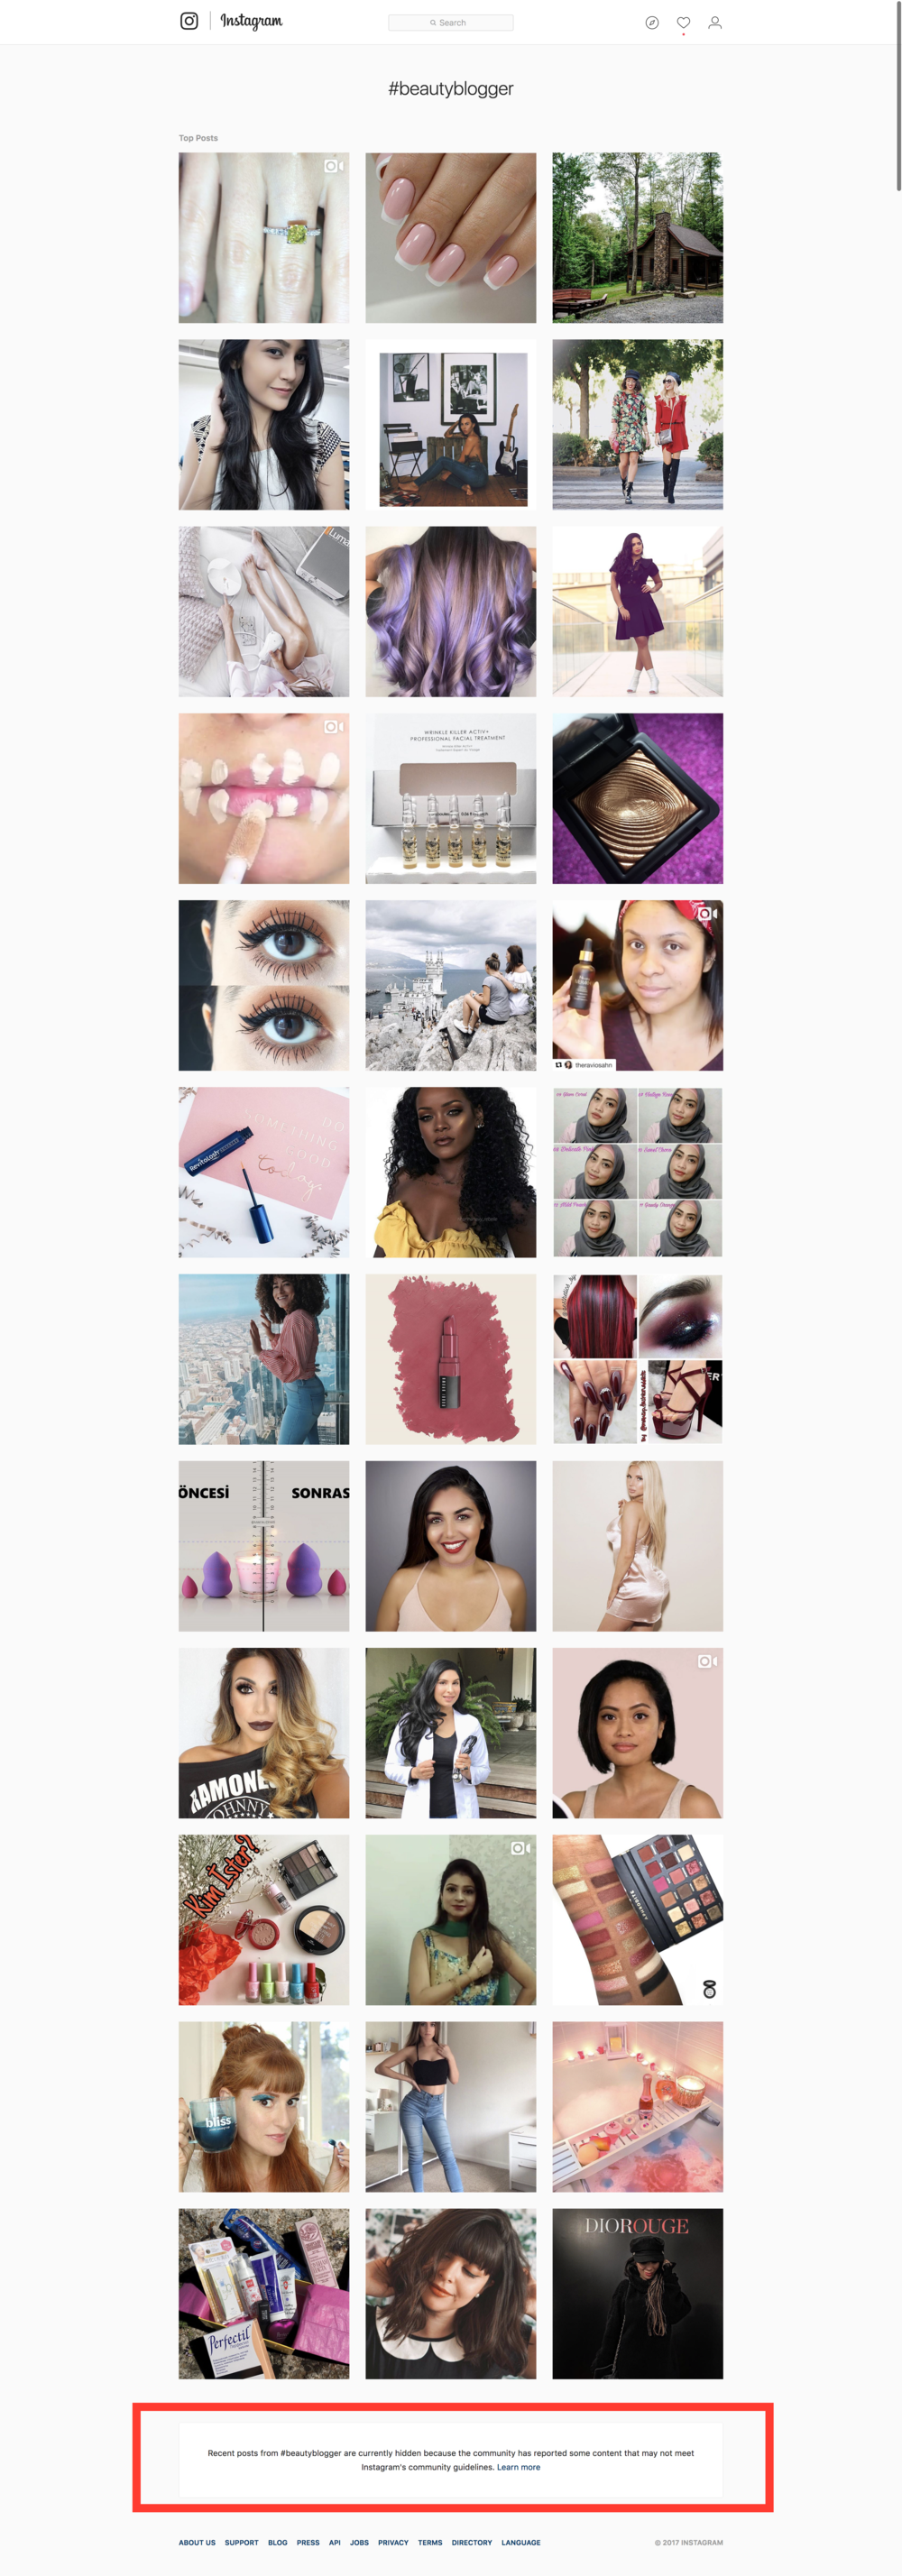 screencapture-instagram-explore-tags-beautyblogger-1506019833310.png